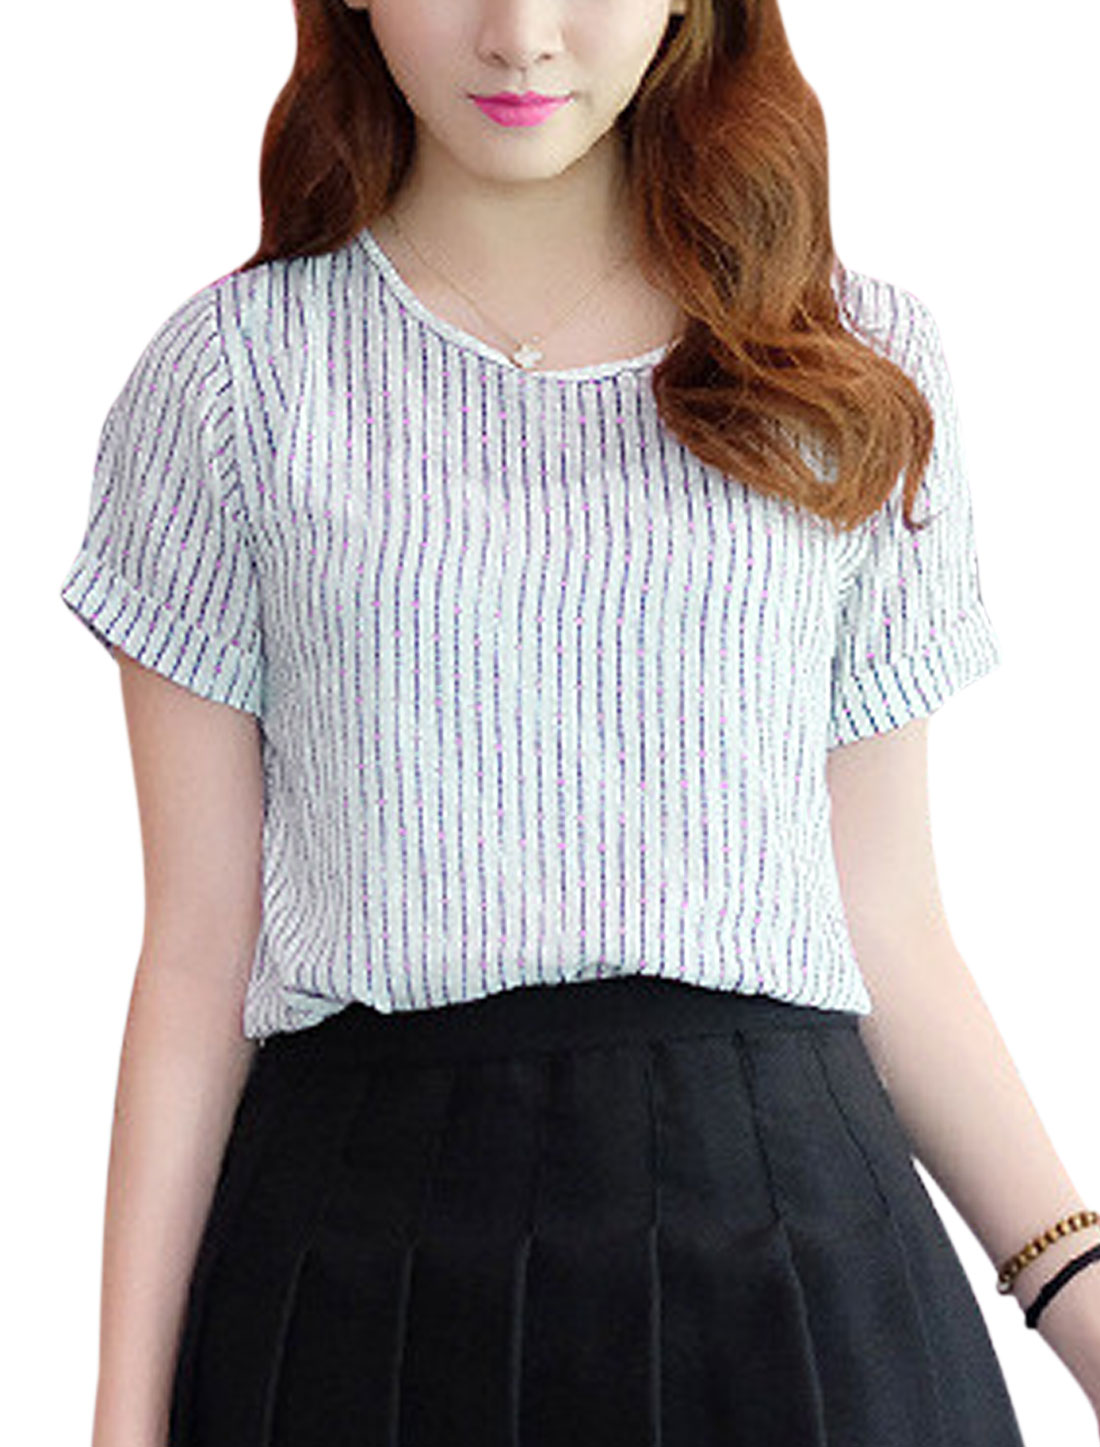 Woman Vertical Stripes Dots Prints Short Sleeves Casual Top Dark Blue Pink XS